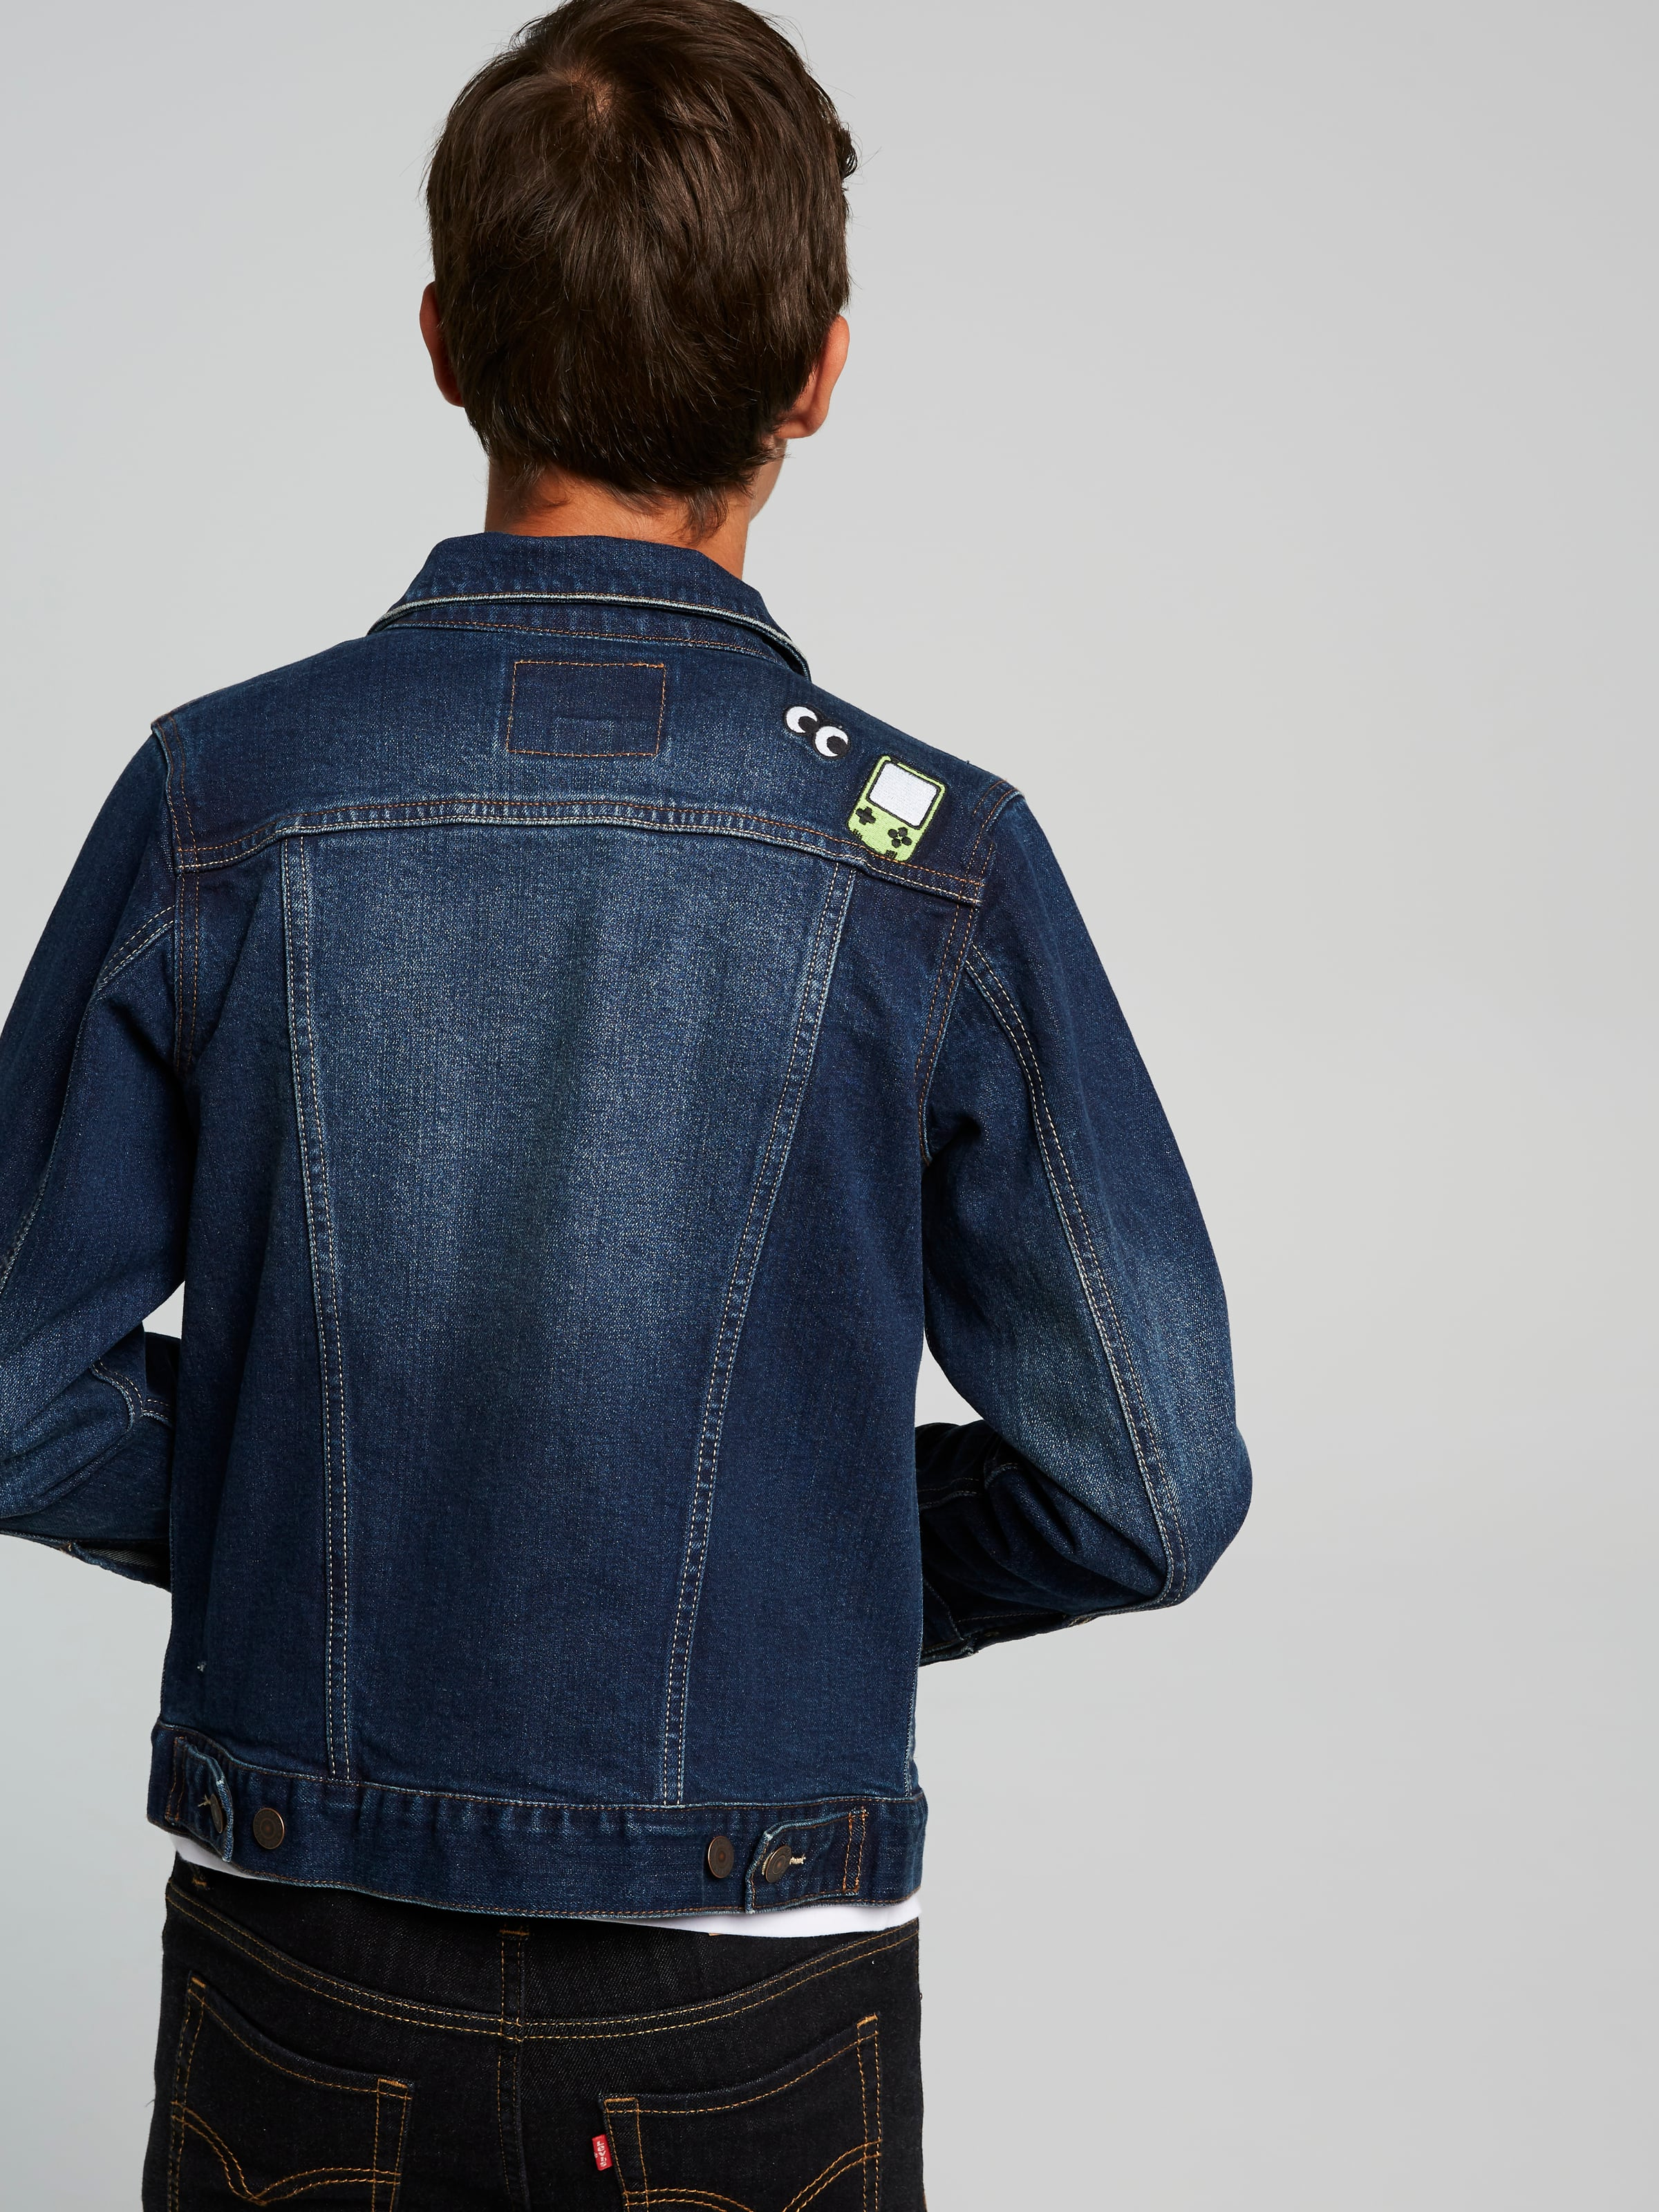 860694eacbe94 ... Image for Levi s Boys Trucker Jacket from Just Jeans ...